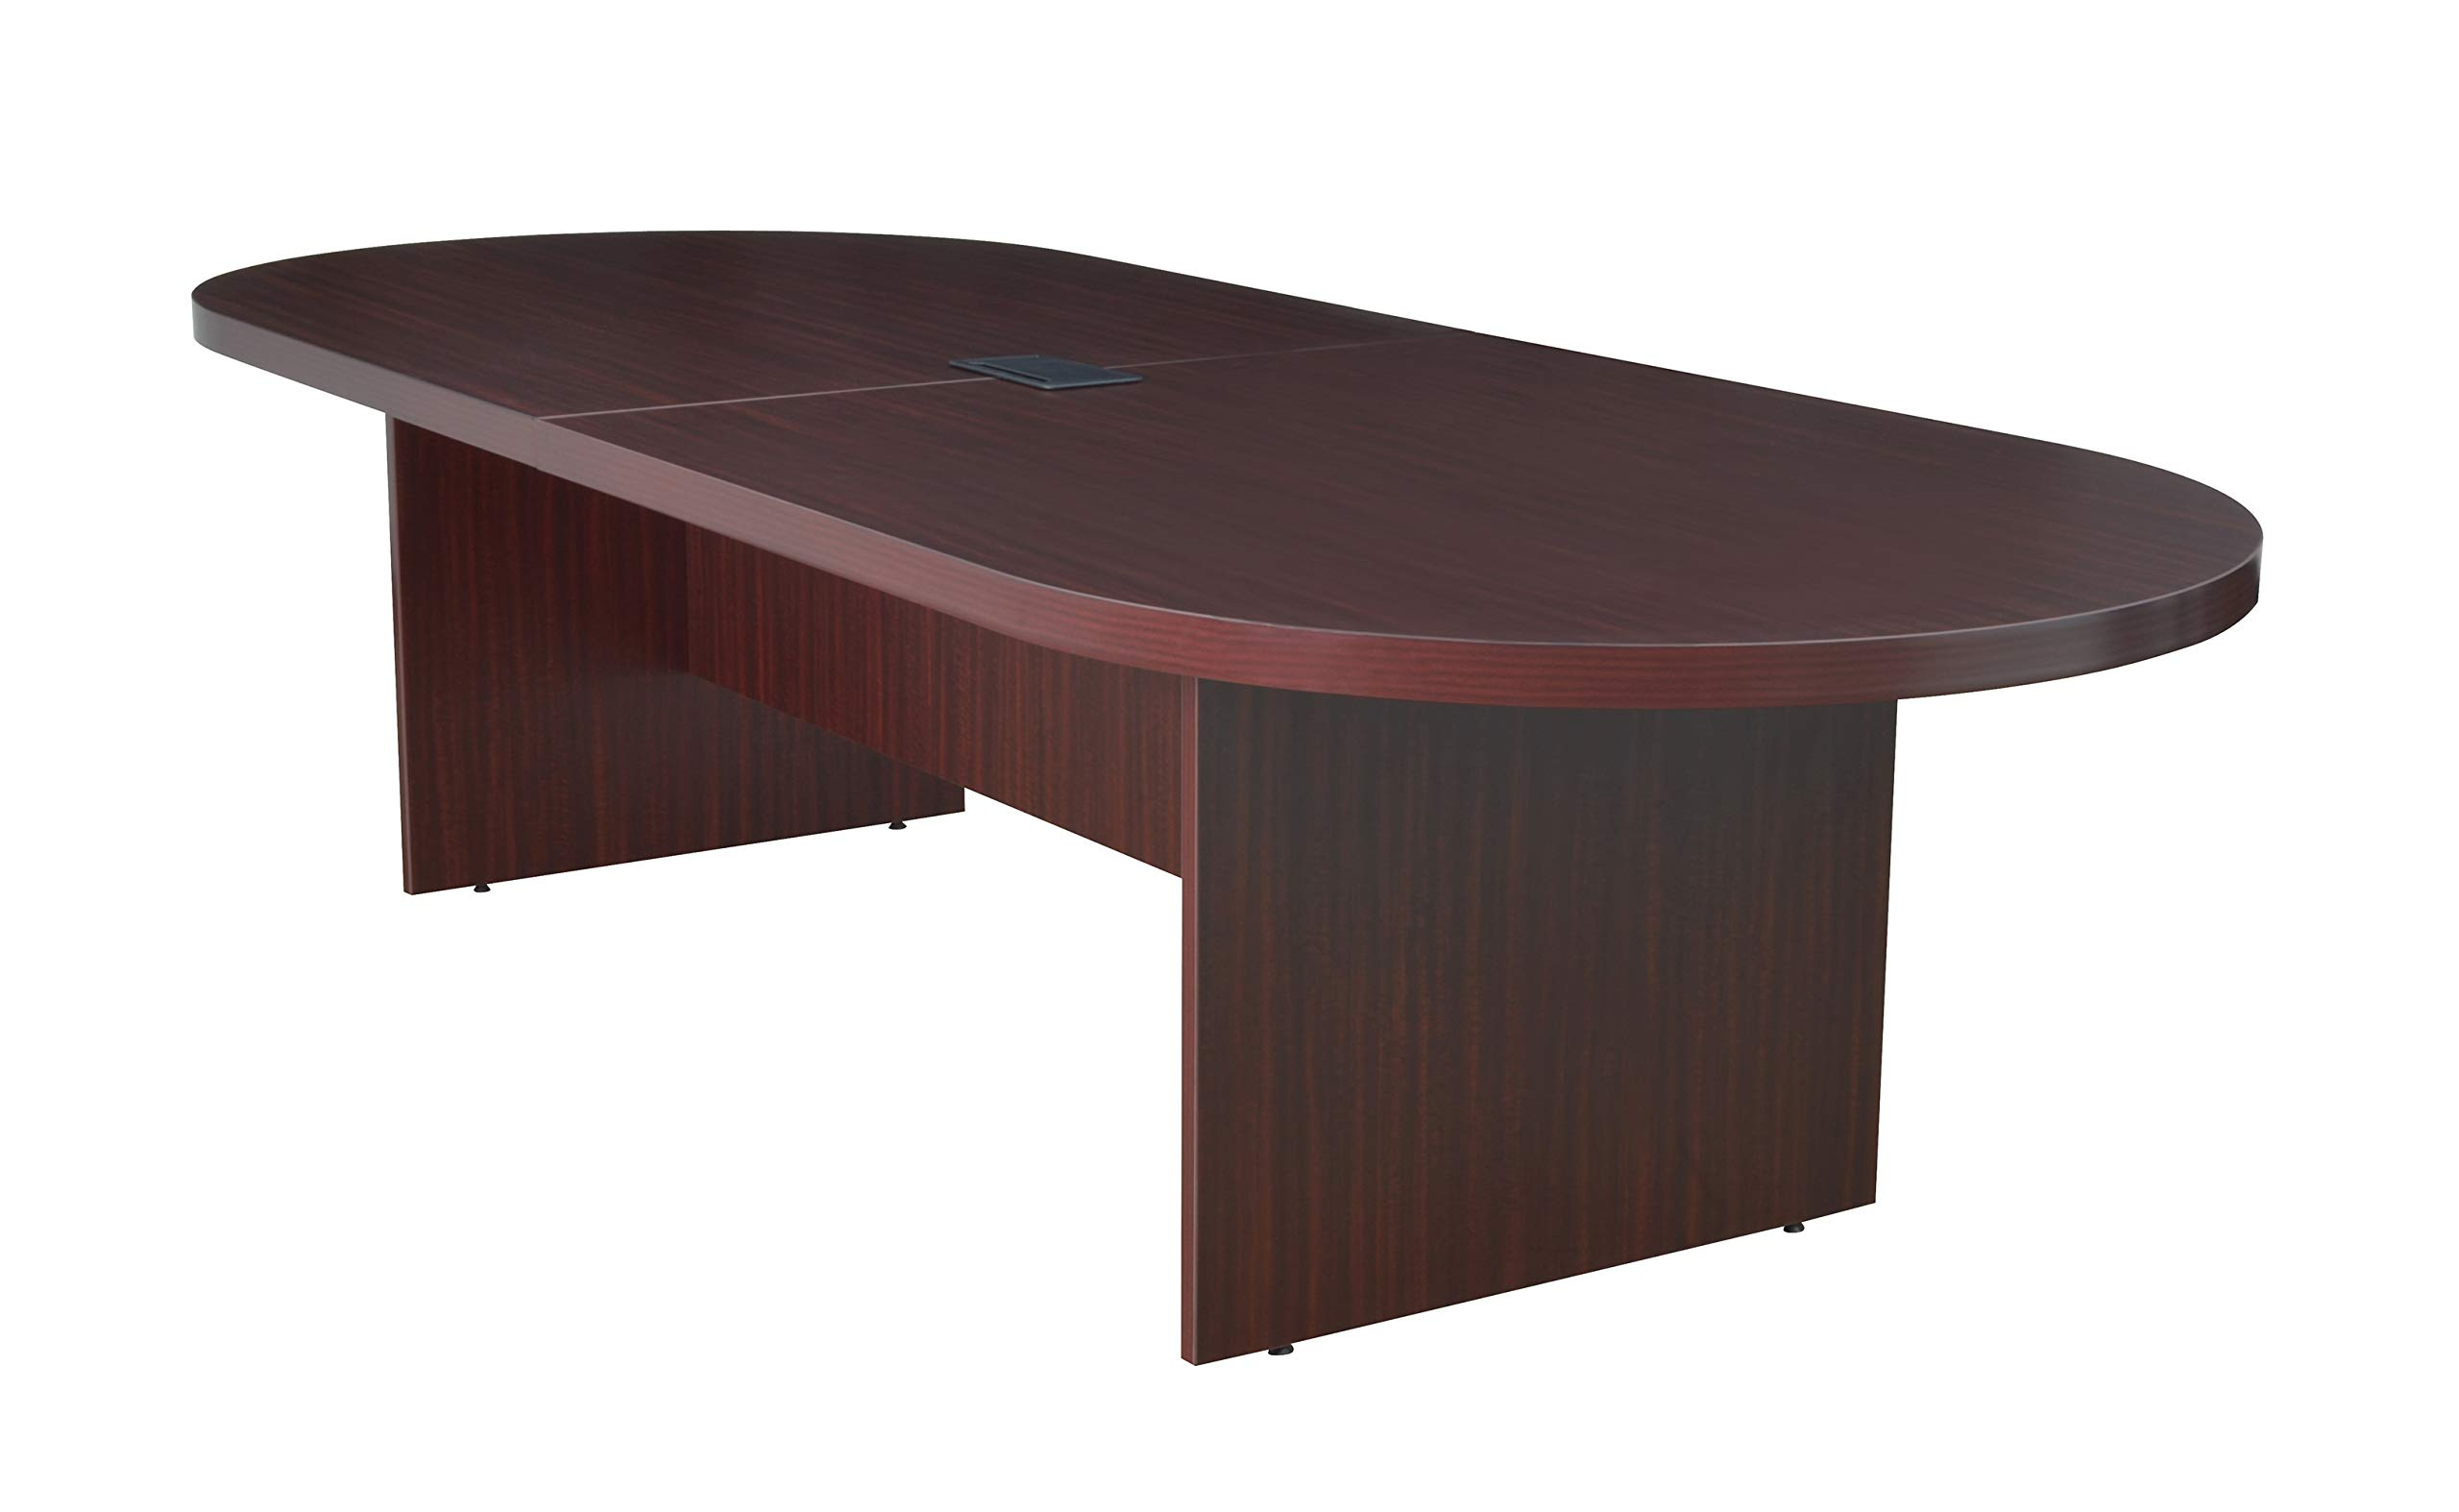 Regency Legacy 120-inch Racetrack Conference Table with Power Data Grommet- Mahogany by Regency